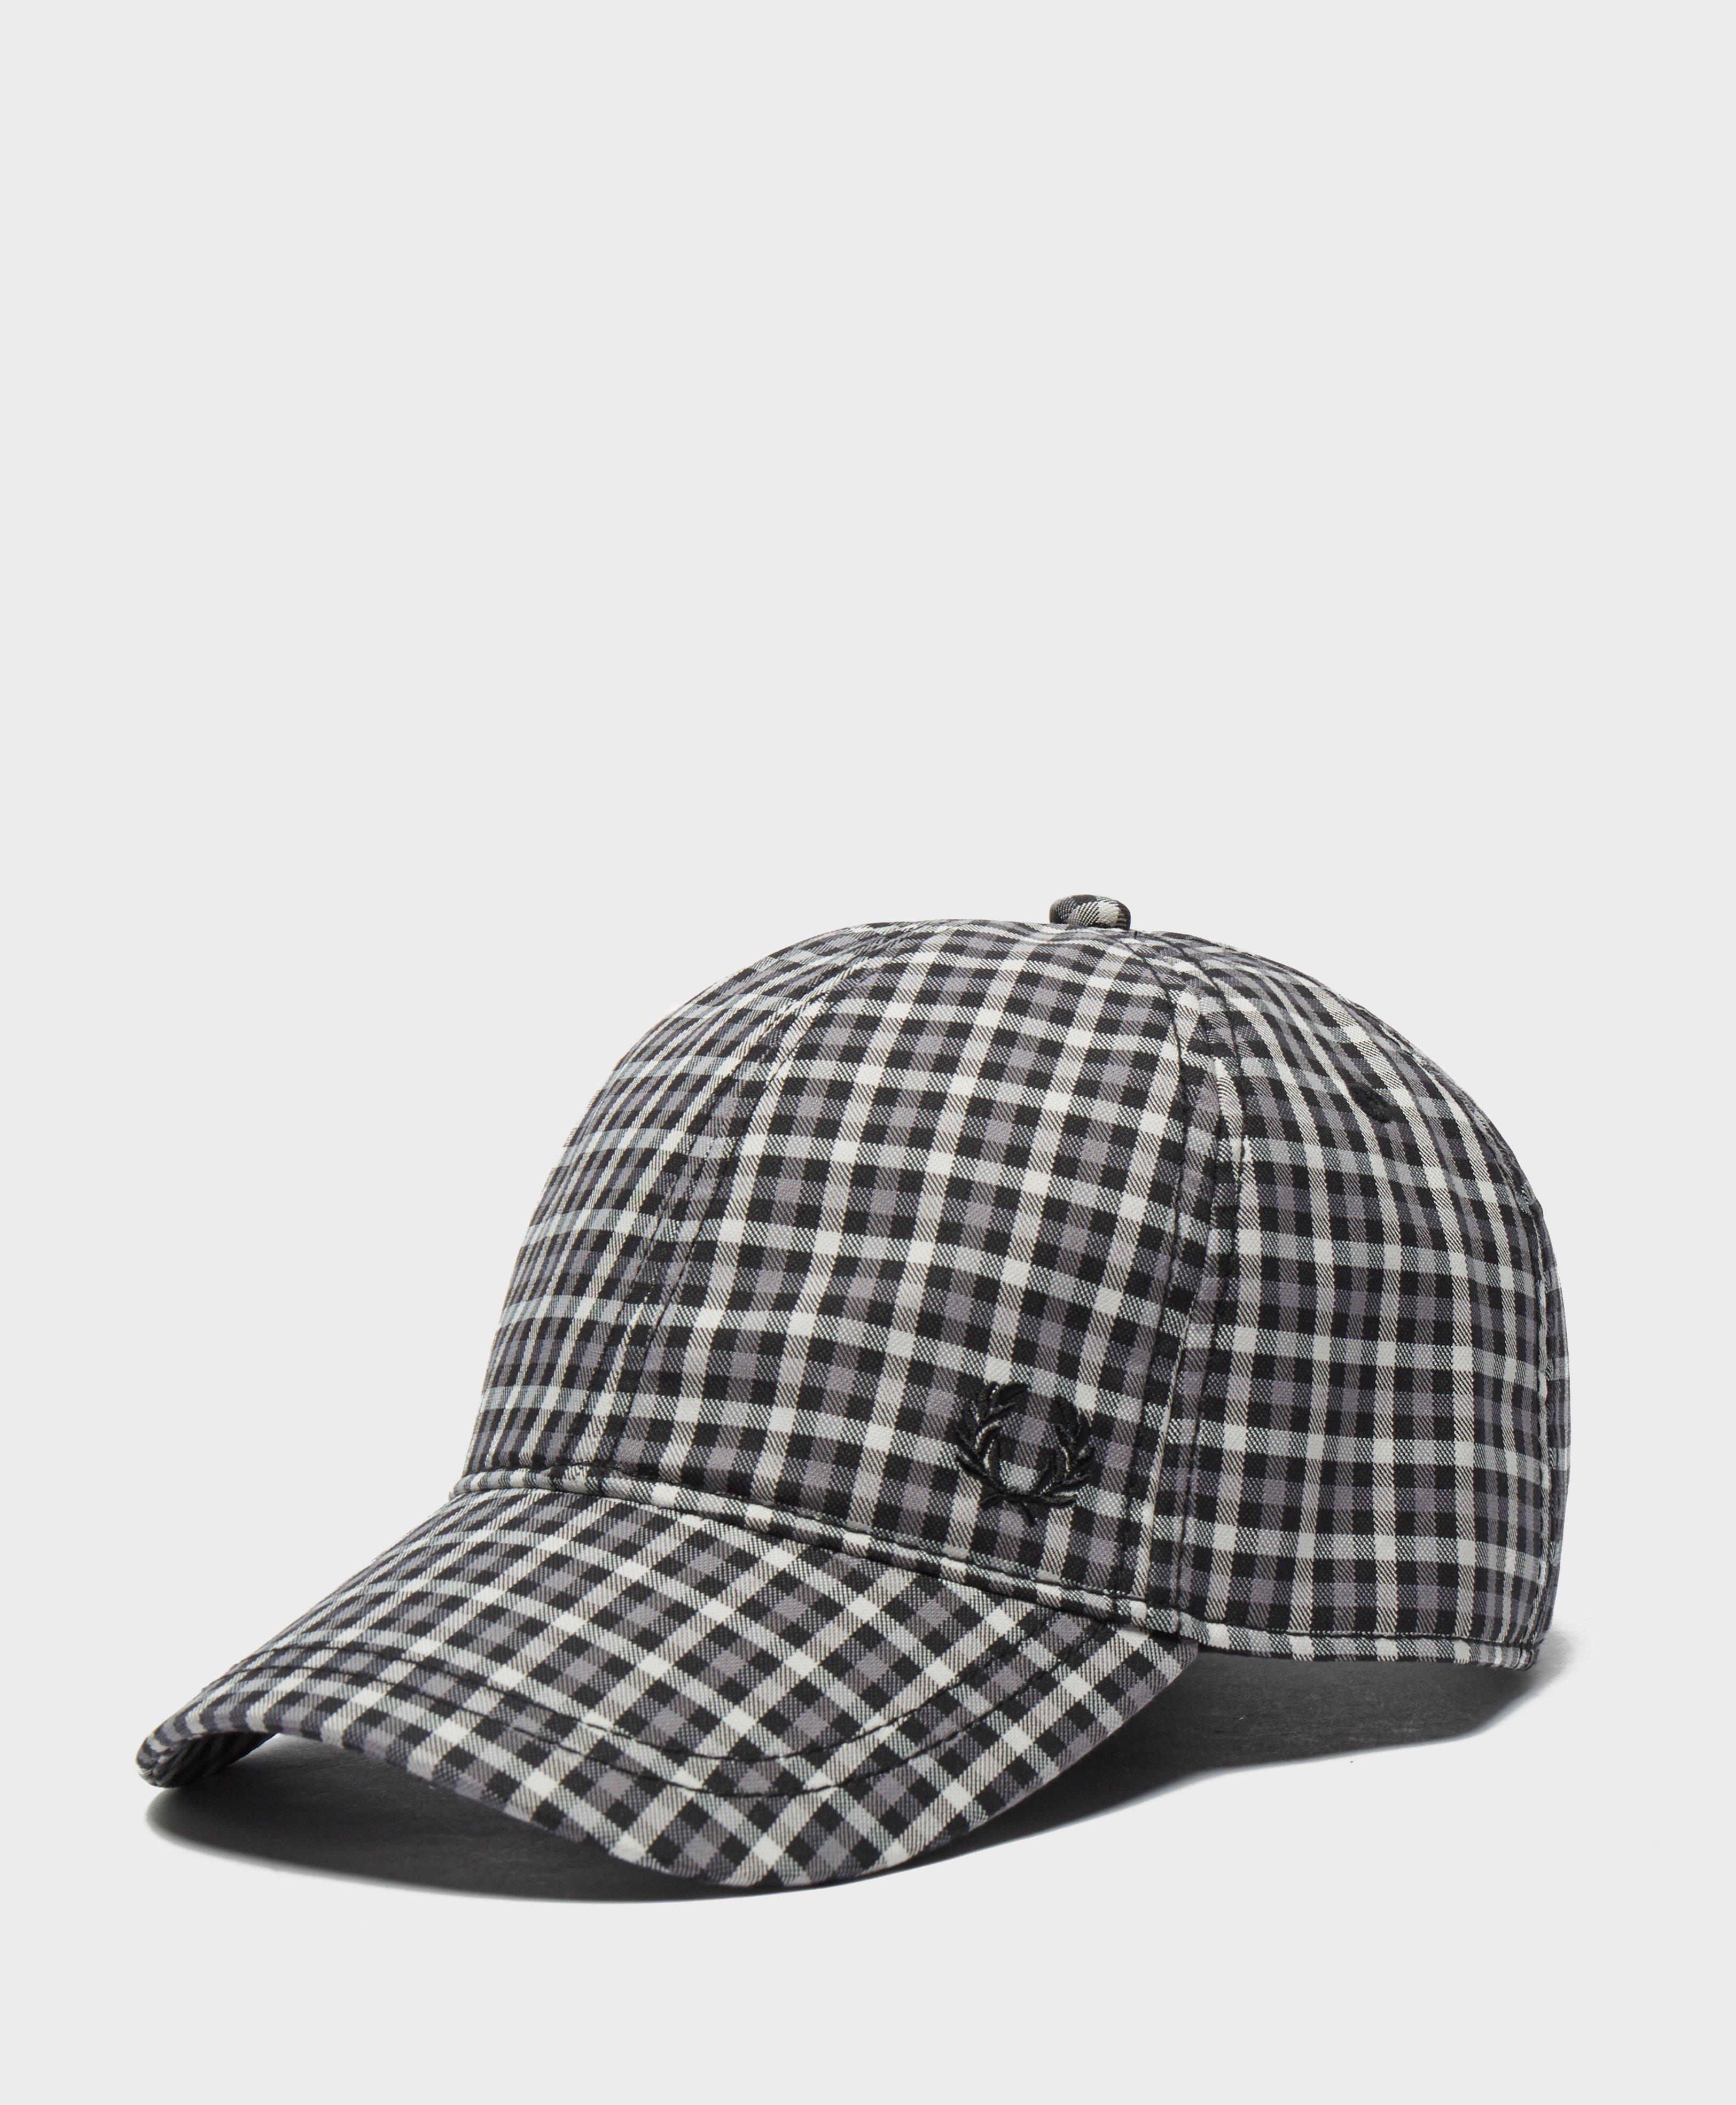 Fred Perry Crest Check Cap for Men - Lyst 568c1a469c14